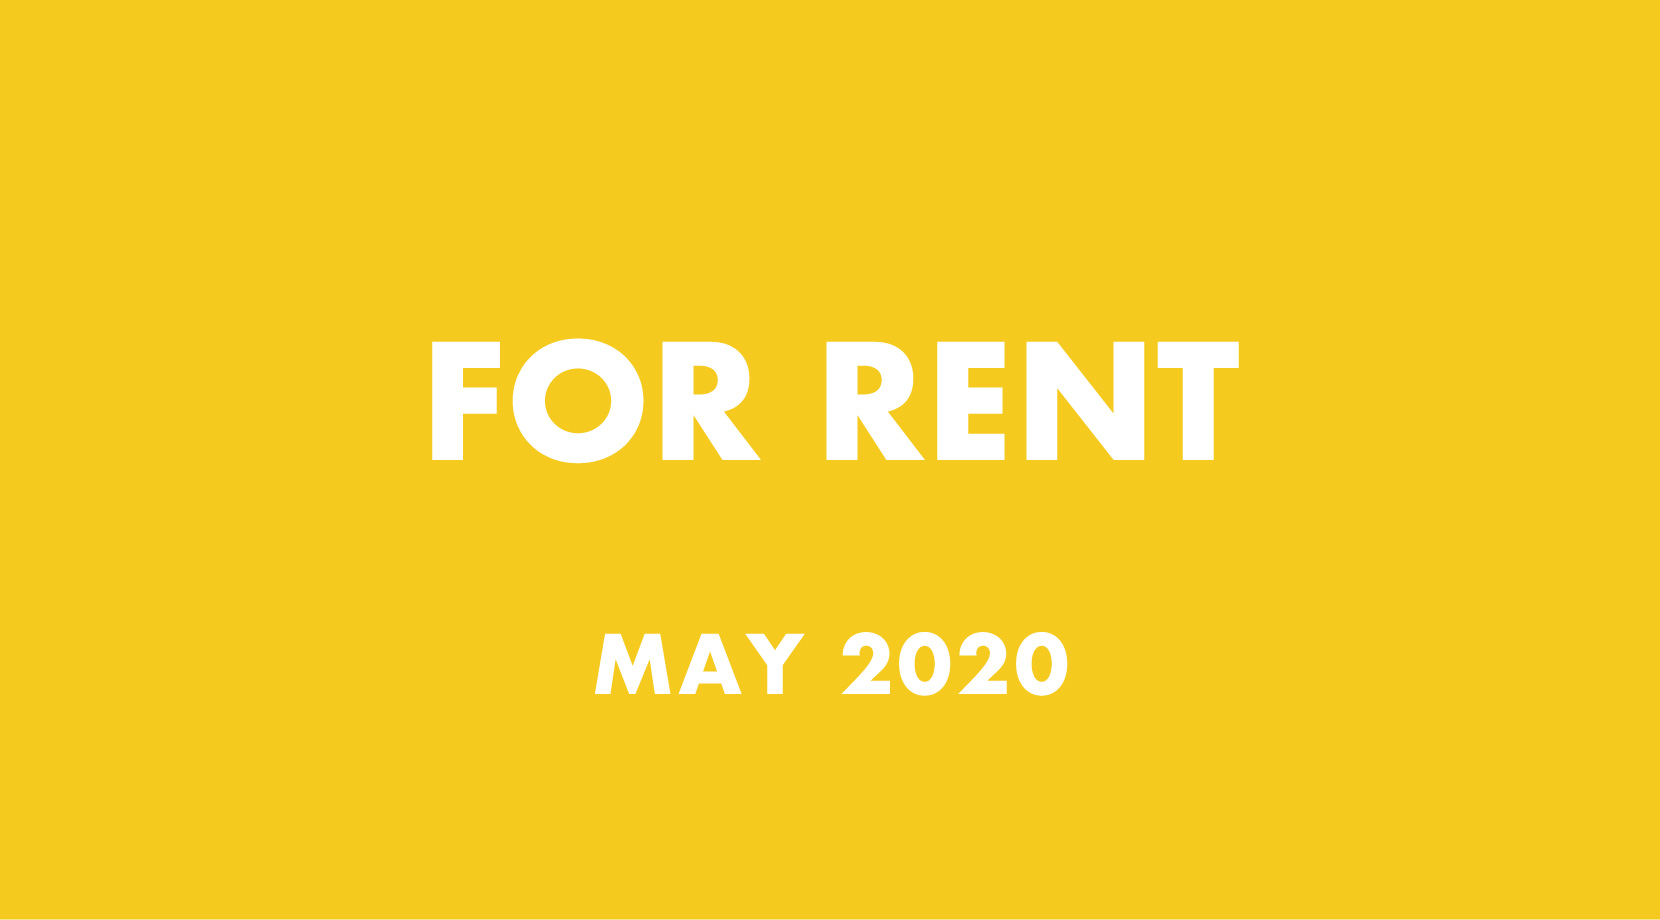 200304-rs_Web_header-forrent_may2020